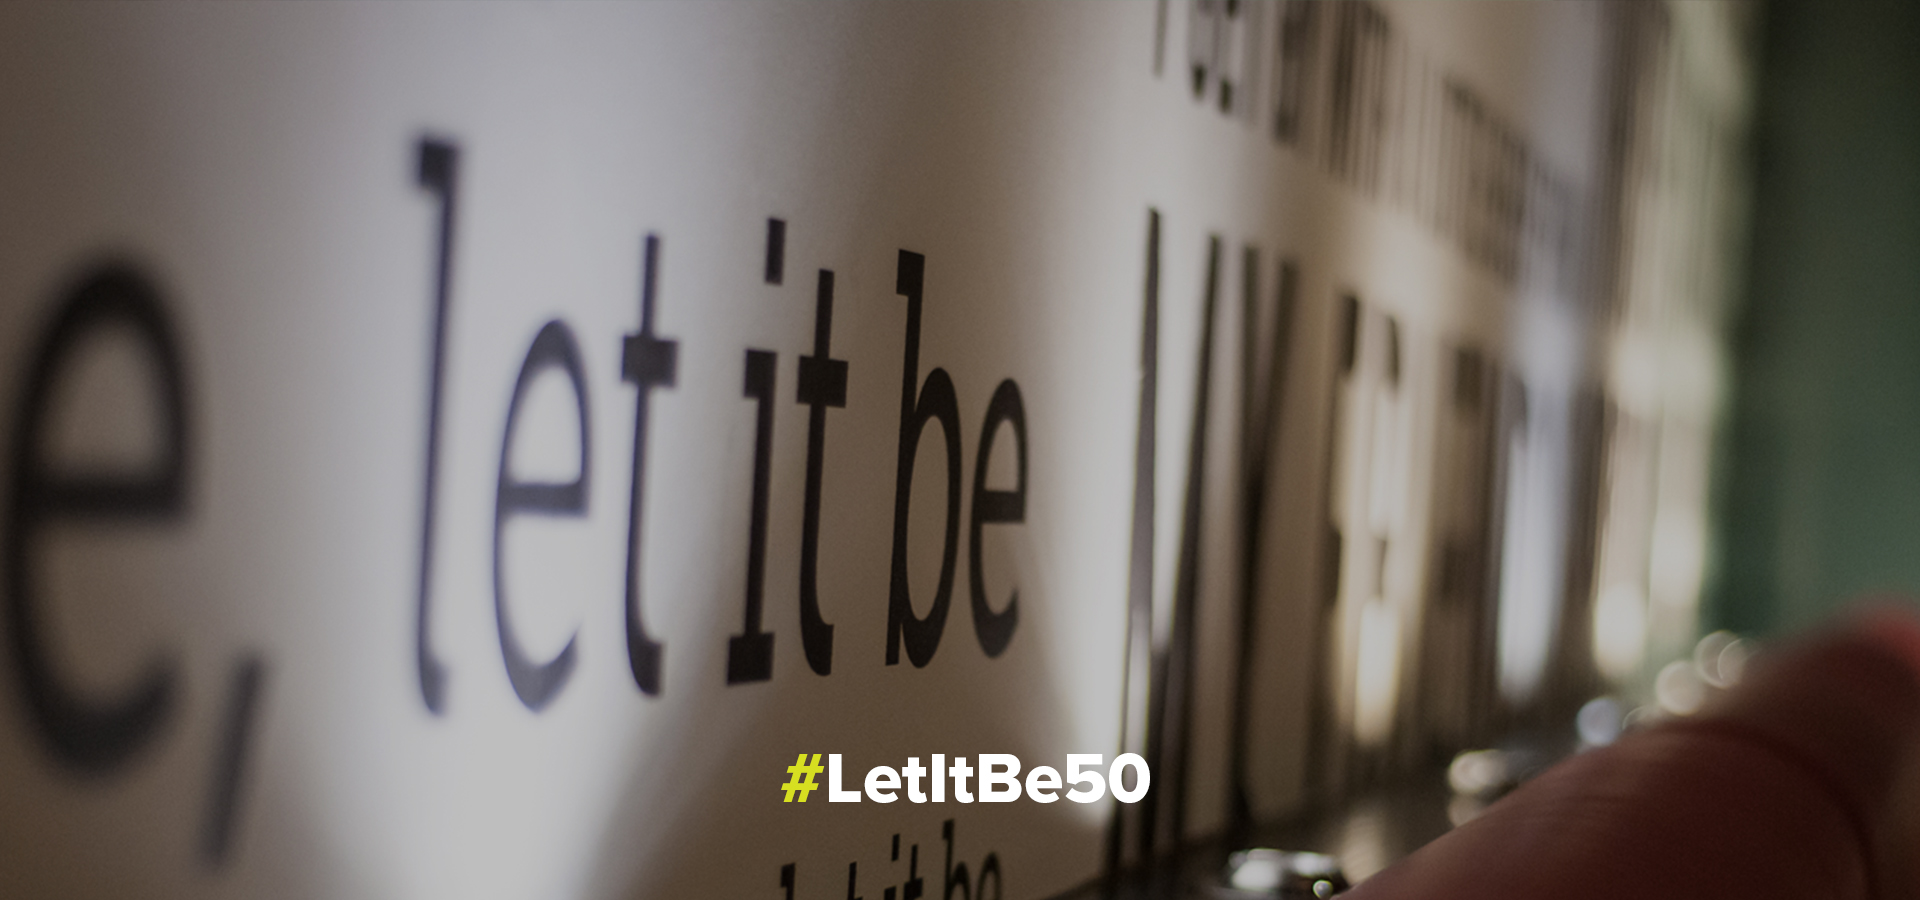 'Let It Be' by Julia Baird - #LetItBe50